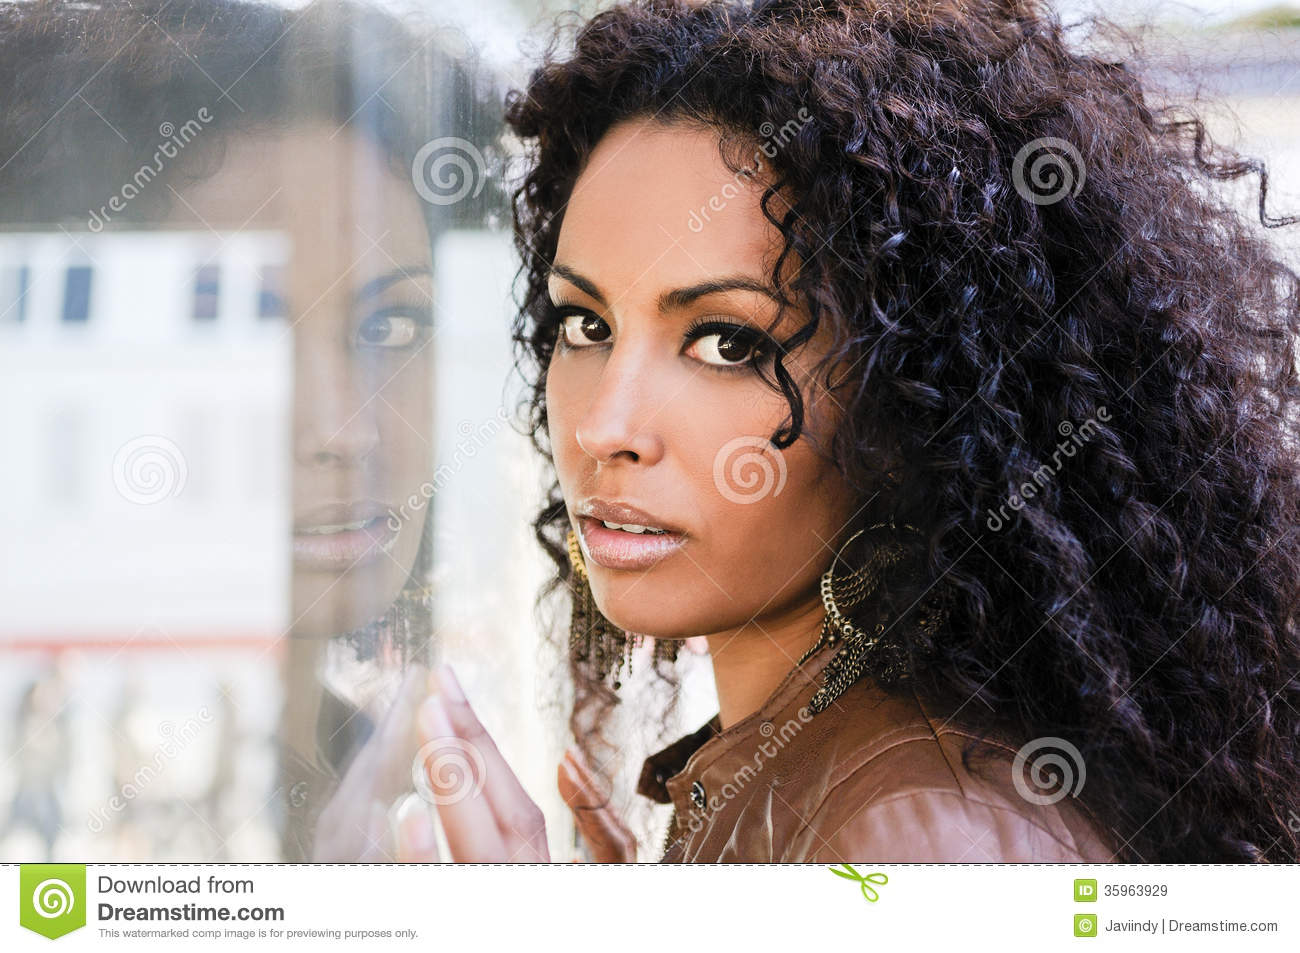 Young Black Woman Afro Hairstyle